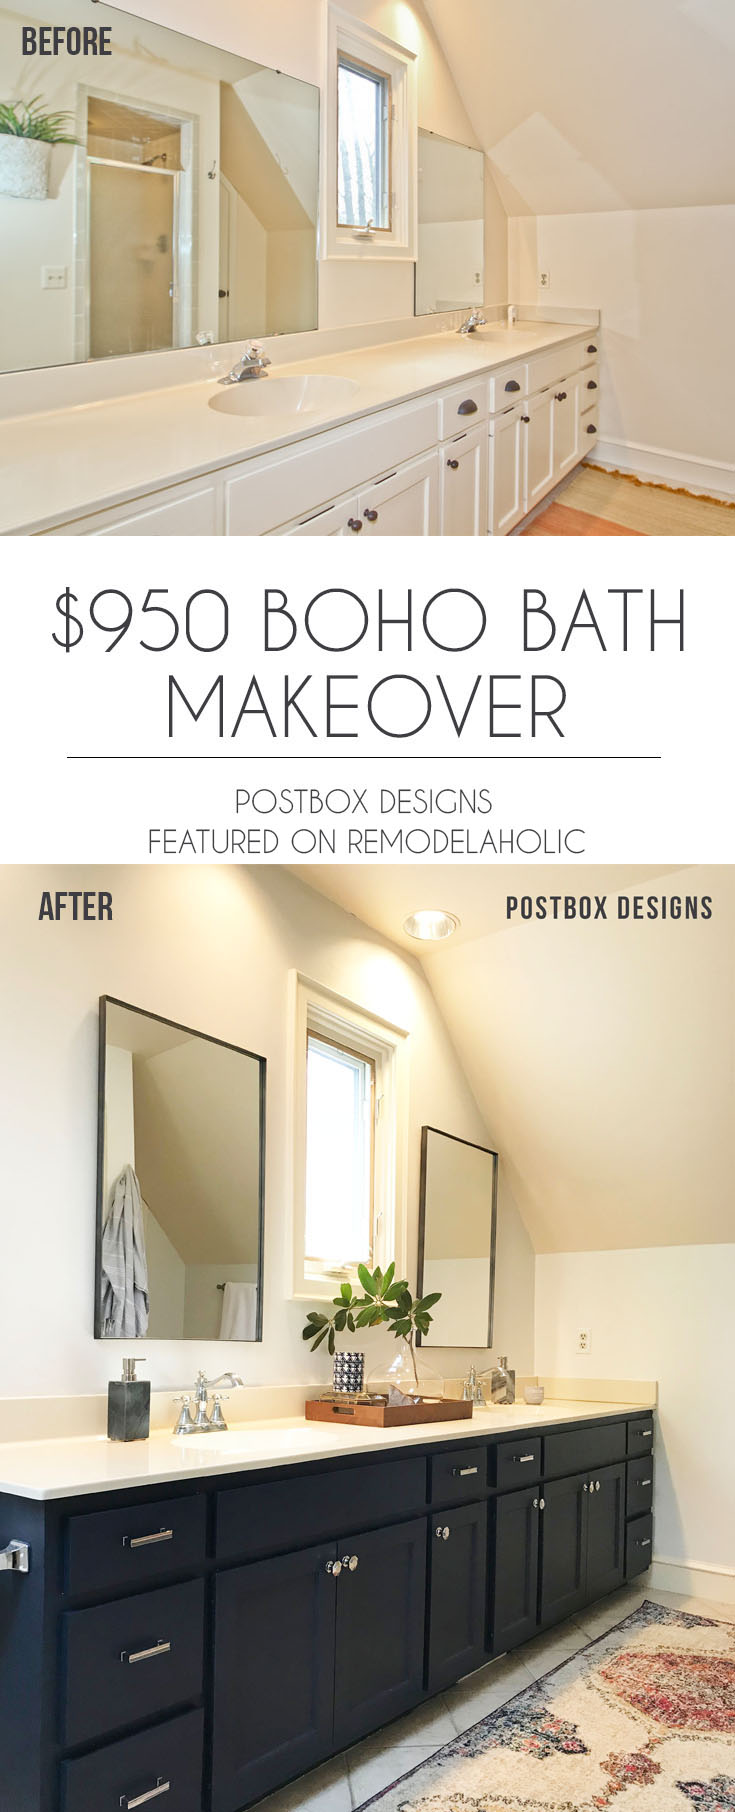 $950 Budget Bathroom Makeover | Update a large master bathroom on a budget with these affordable product sources, budget-friendly tips and DIY projects #remodelaholic